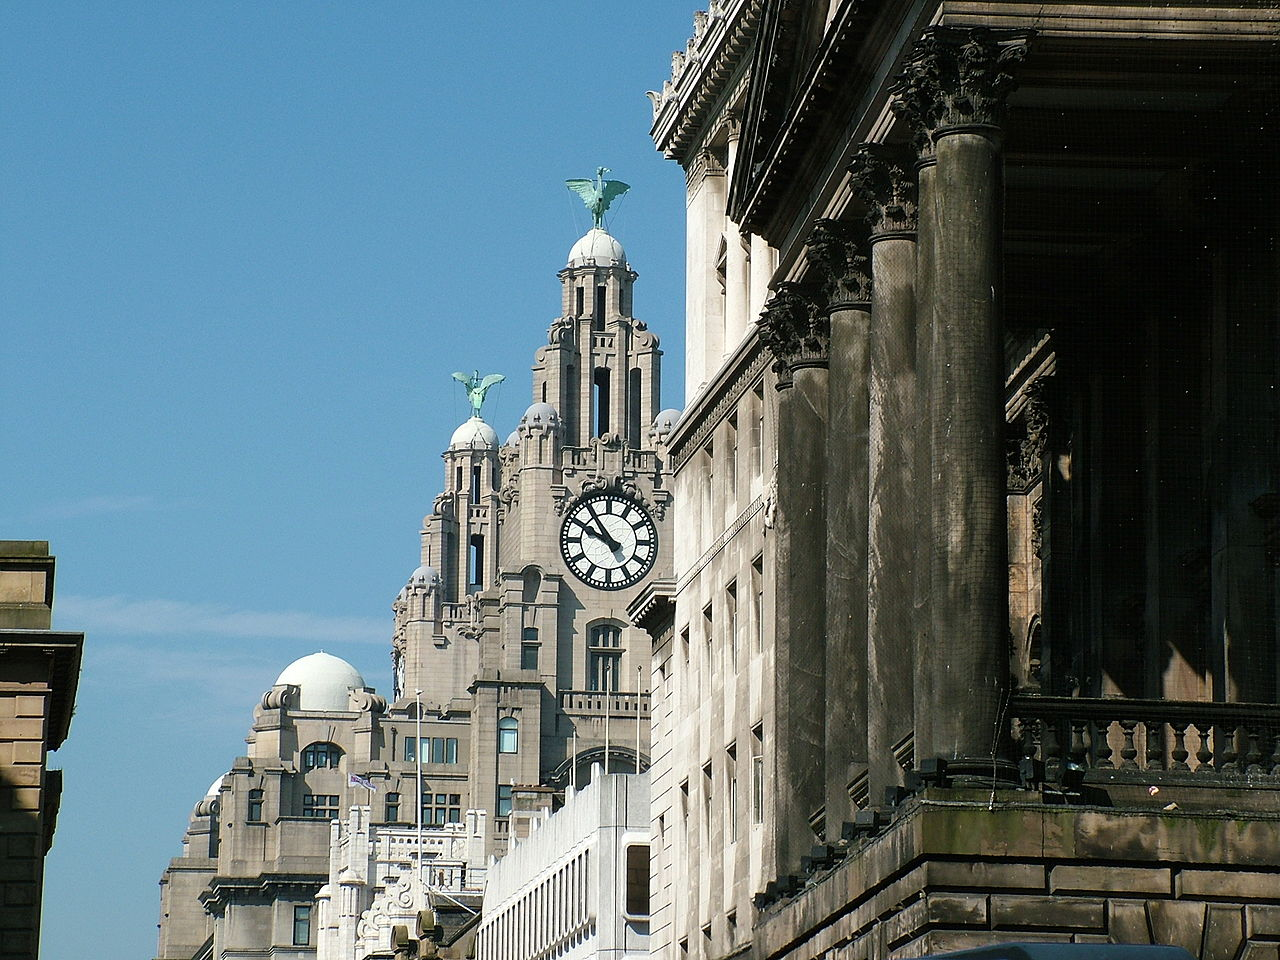 Royal Liver Building By Tagishimon licensed for reuse under CC BY-SA 3.0